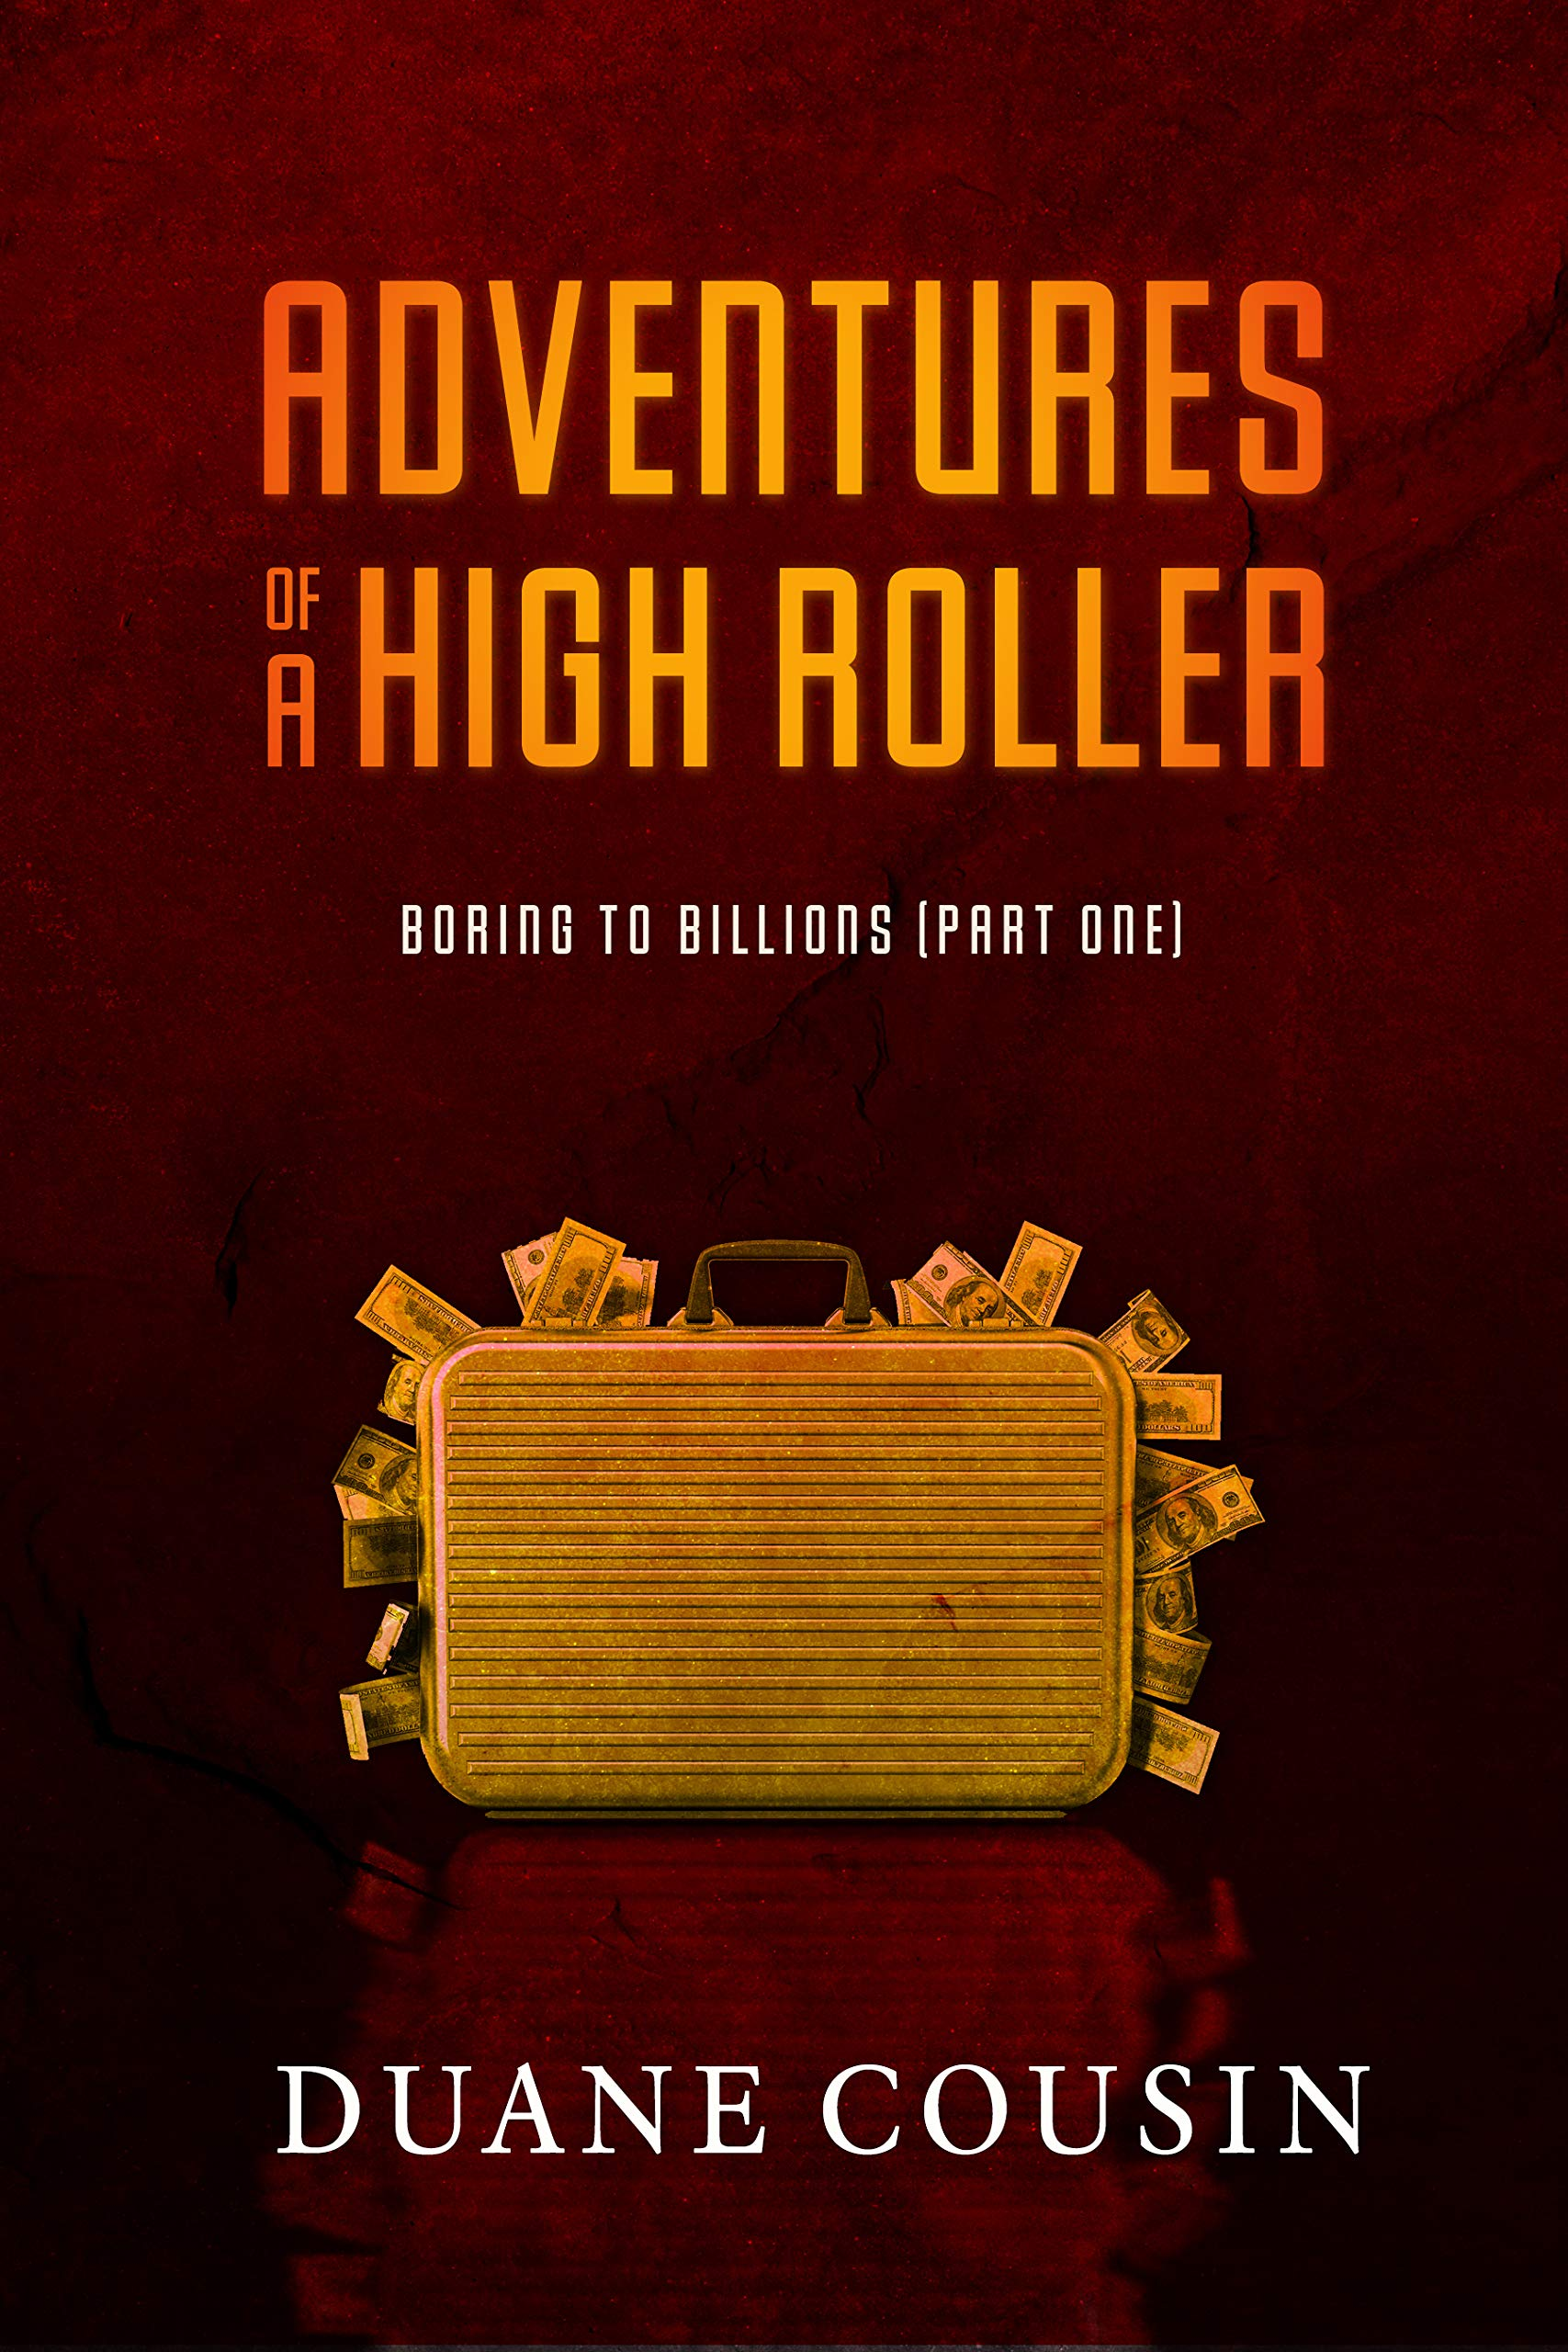 Boring to Billions : Adventures of a High Roller (Part One)